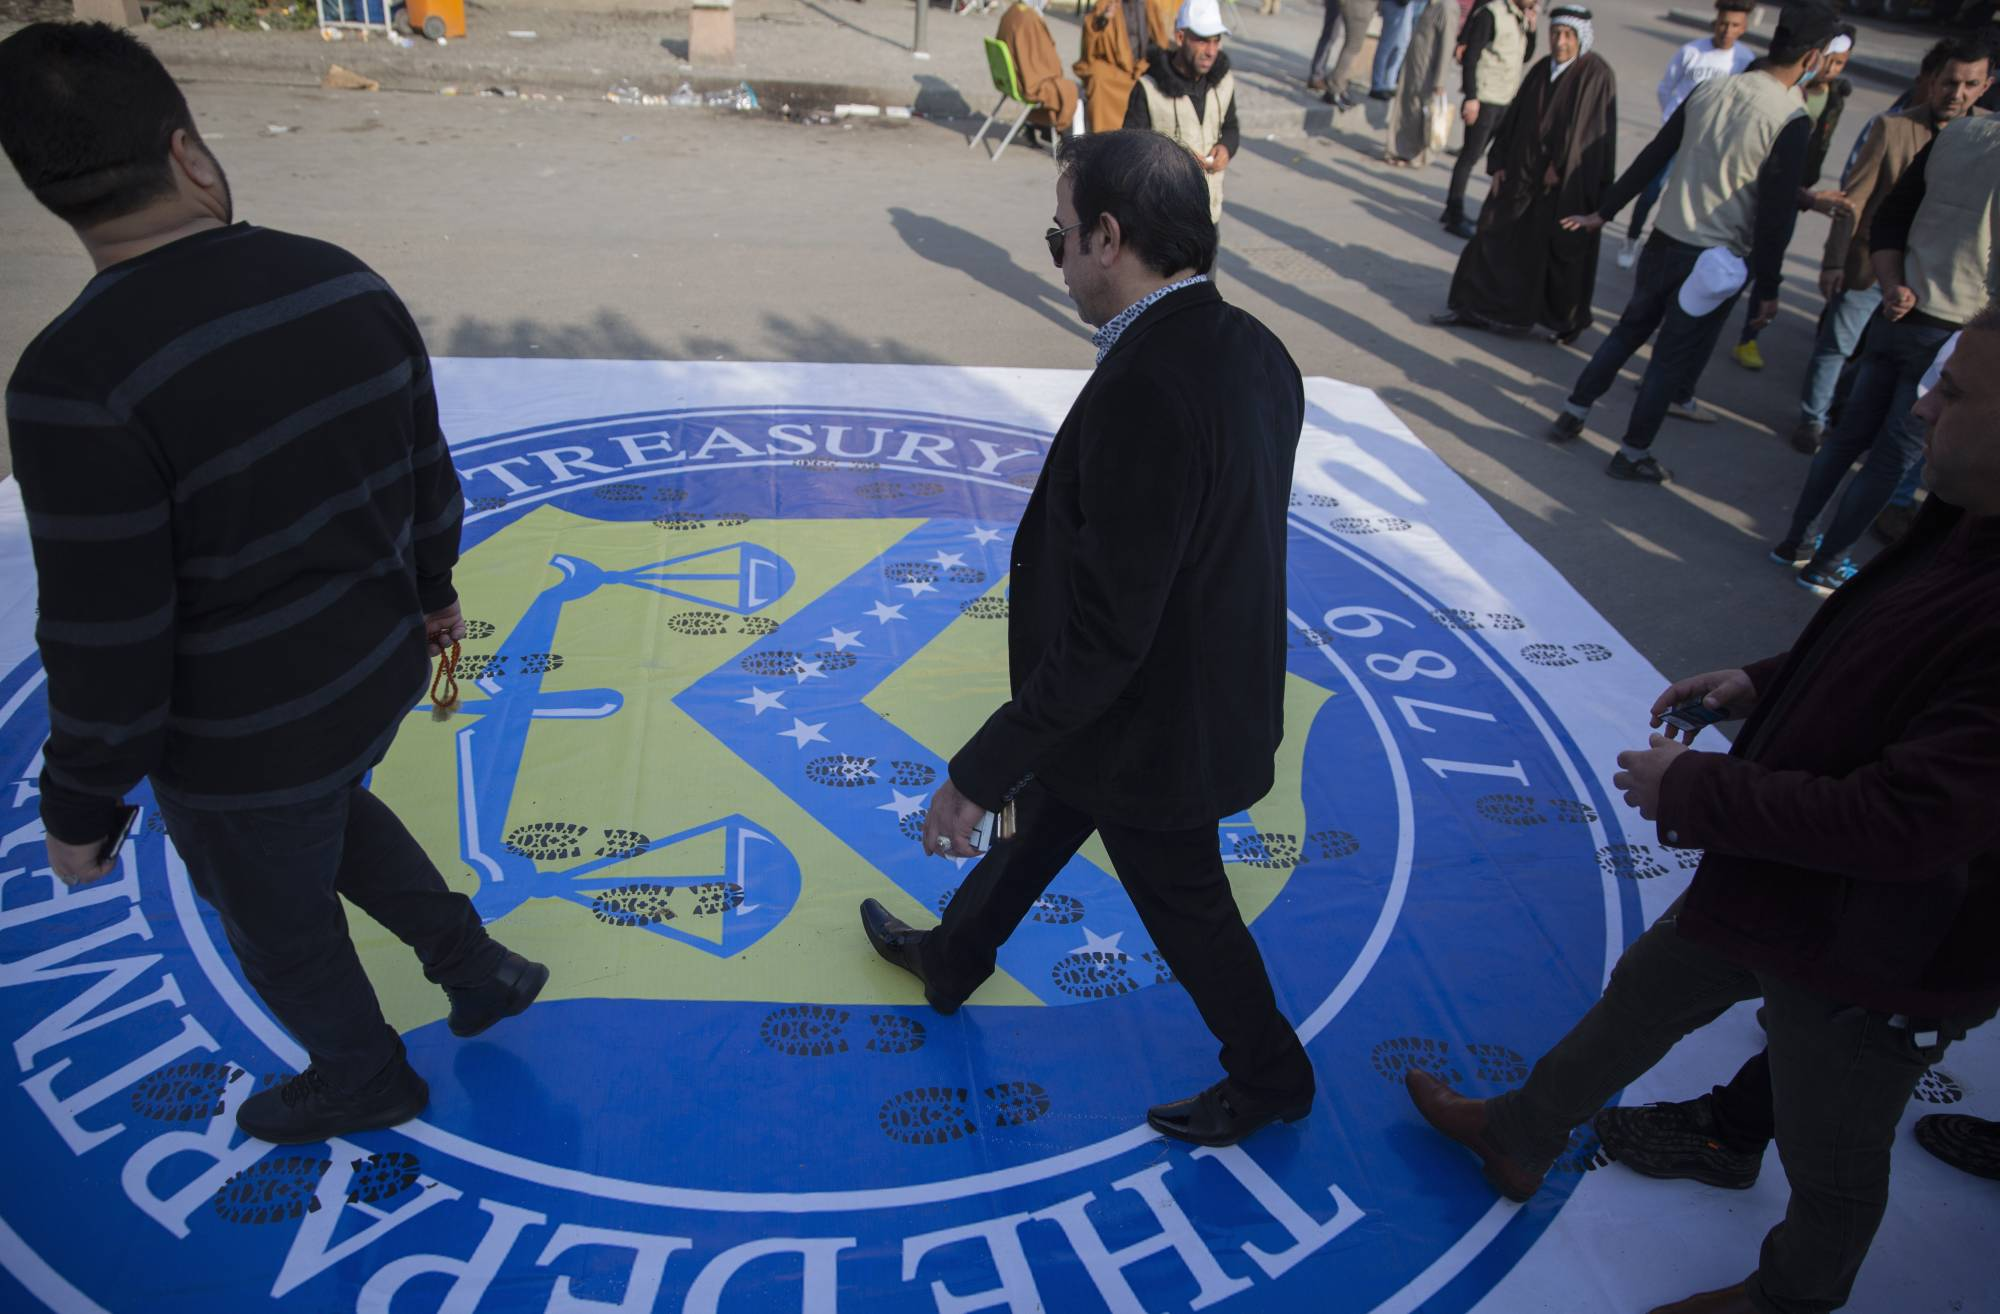 Iraqi protesters walk over a big poster with the logo of the US Department Of The Treasury, that was spread on the street by the organizers to show disrespect, during a rally for the Shiite group Asaib Ahl al-Haq, in Baghdad, Iraq, Saturday, Dec. 14, 2019.   (AP Photo/Nasser Nasser)